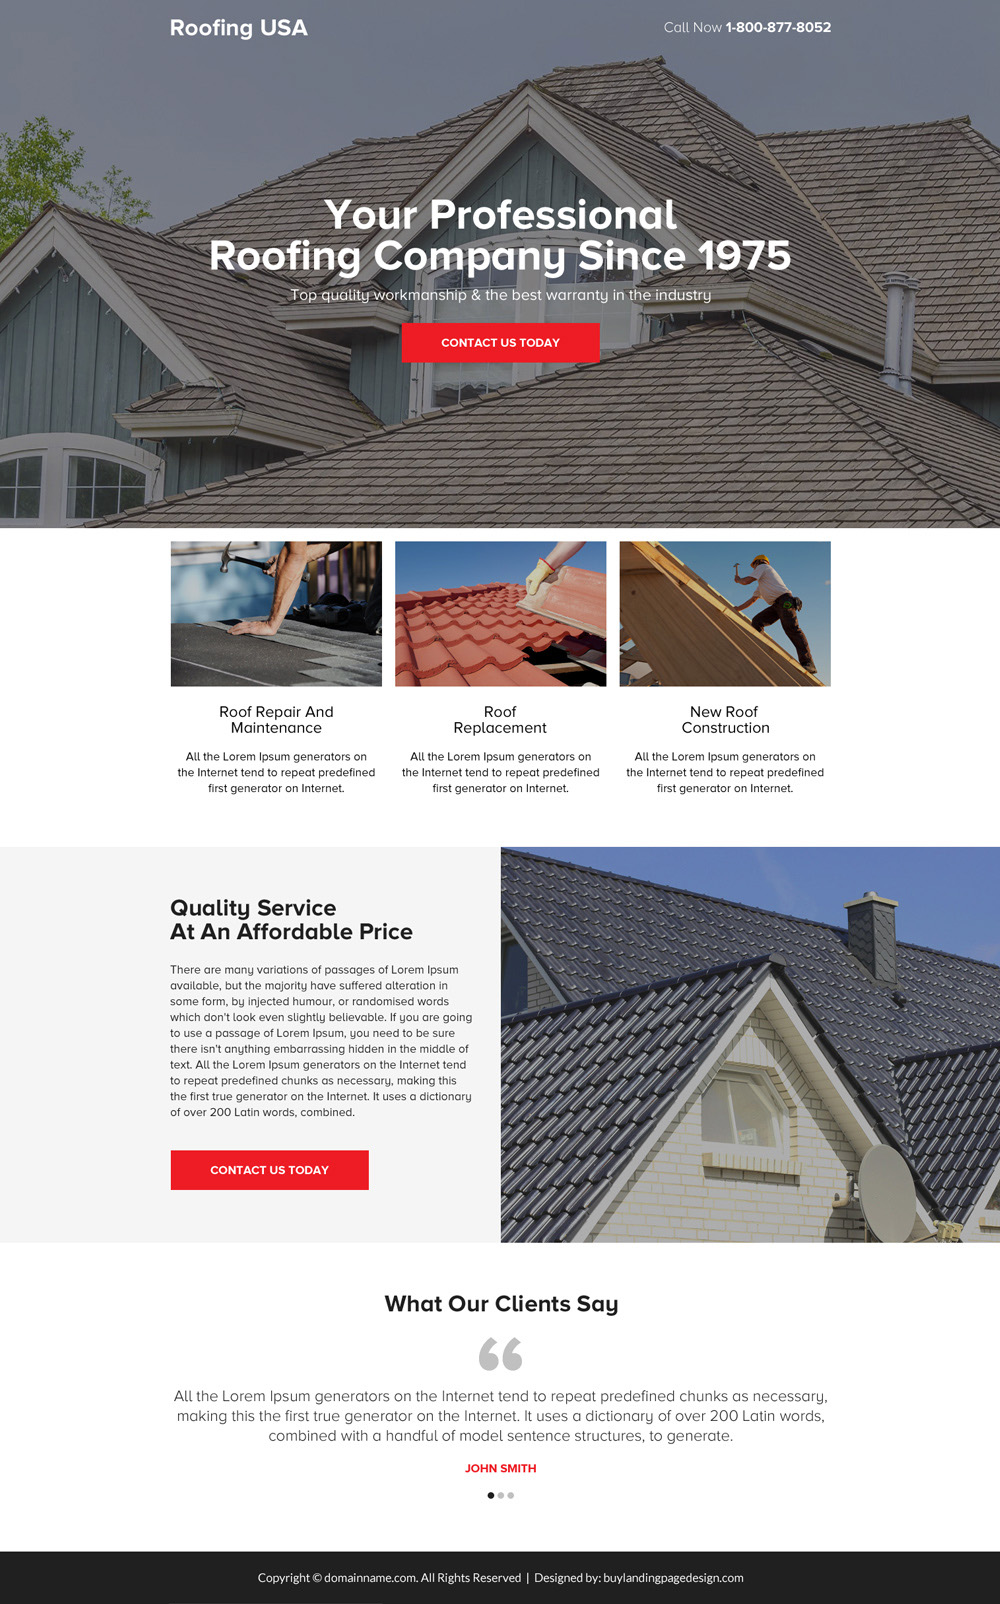 Professional roofing company minimal landing page